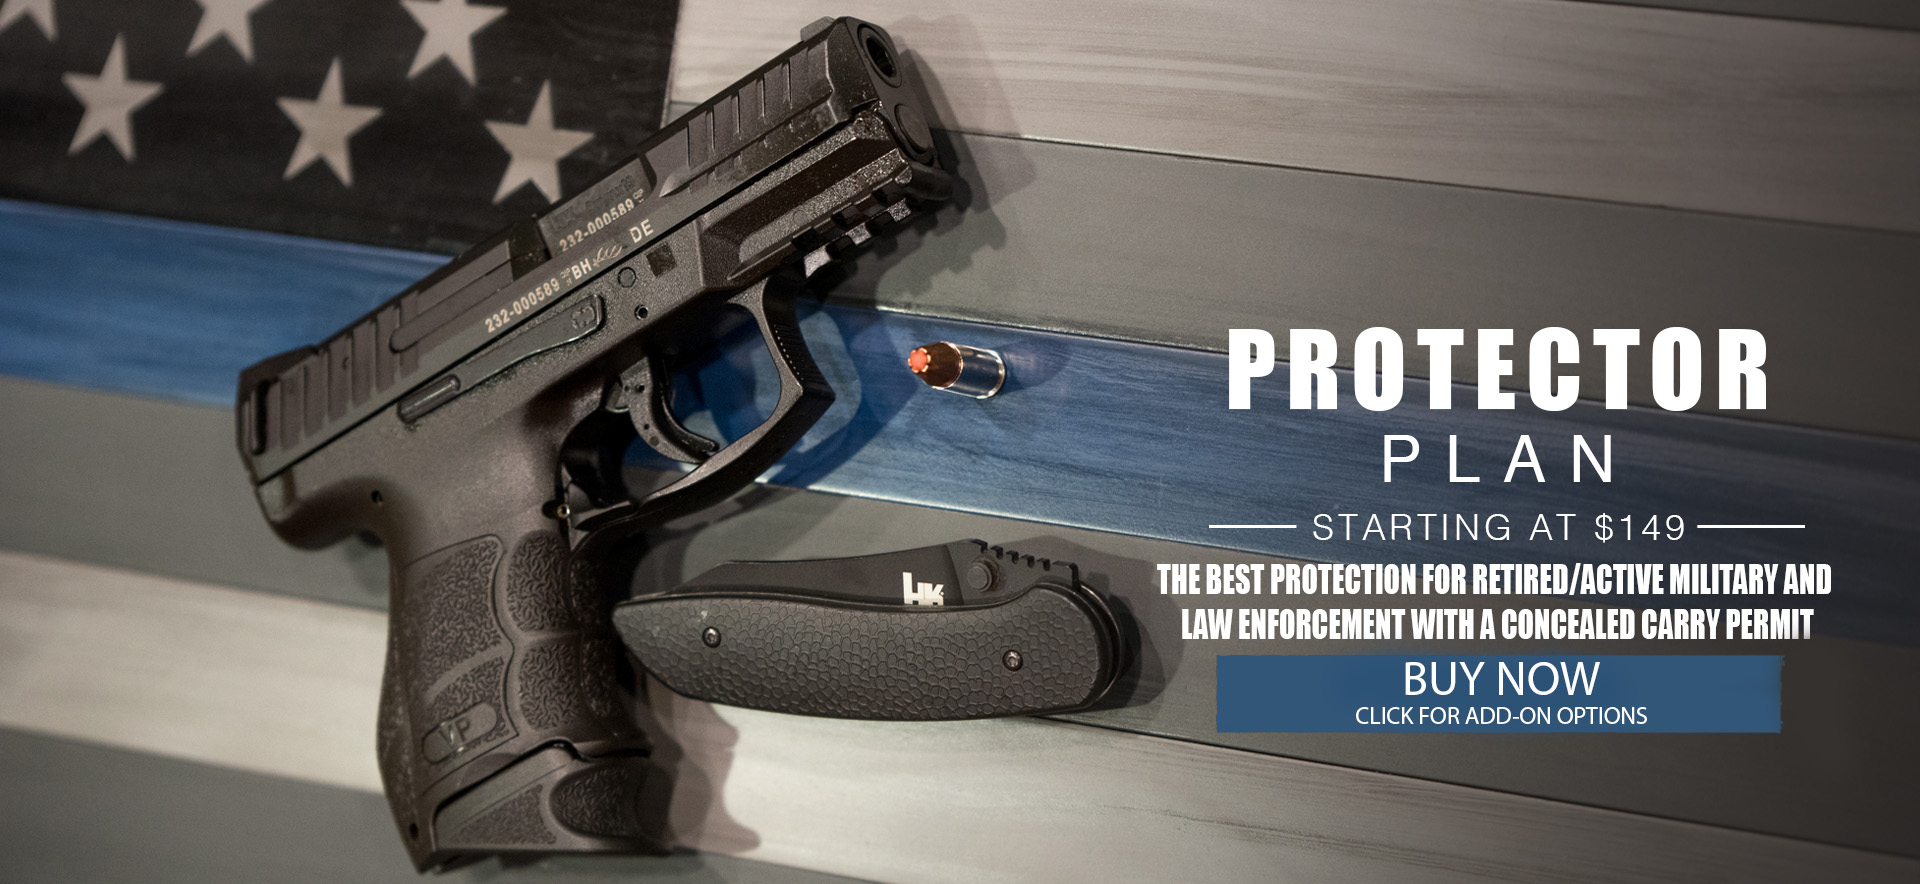 Protector Plan - CCW Safe National | CCW Safe Weapon